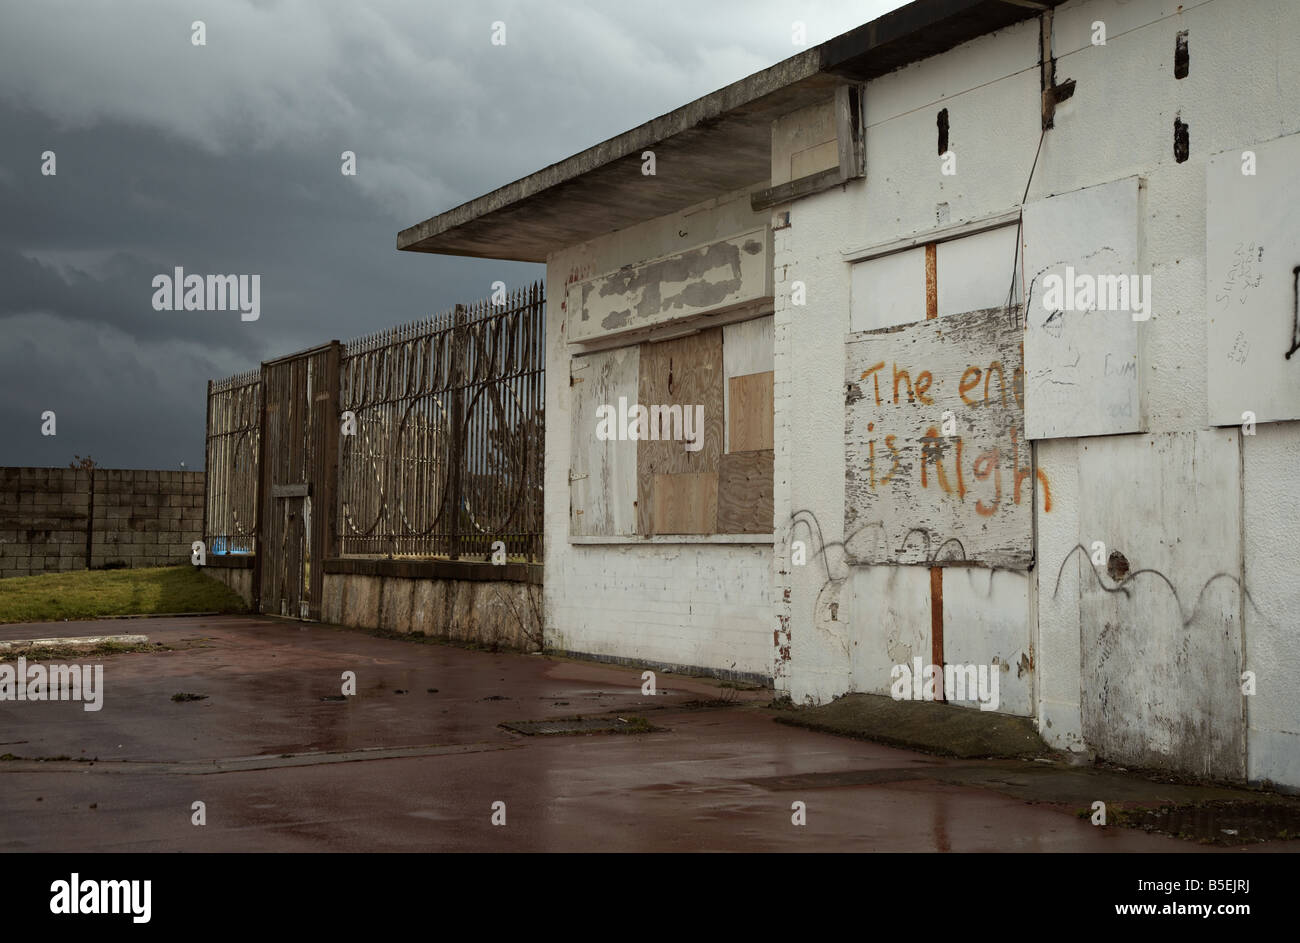 boarded up refreshment stall at an english seaside town morecambe on a stormy day with prophetic graffiti saying - Stock Image